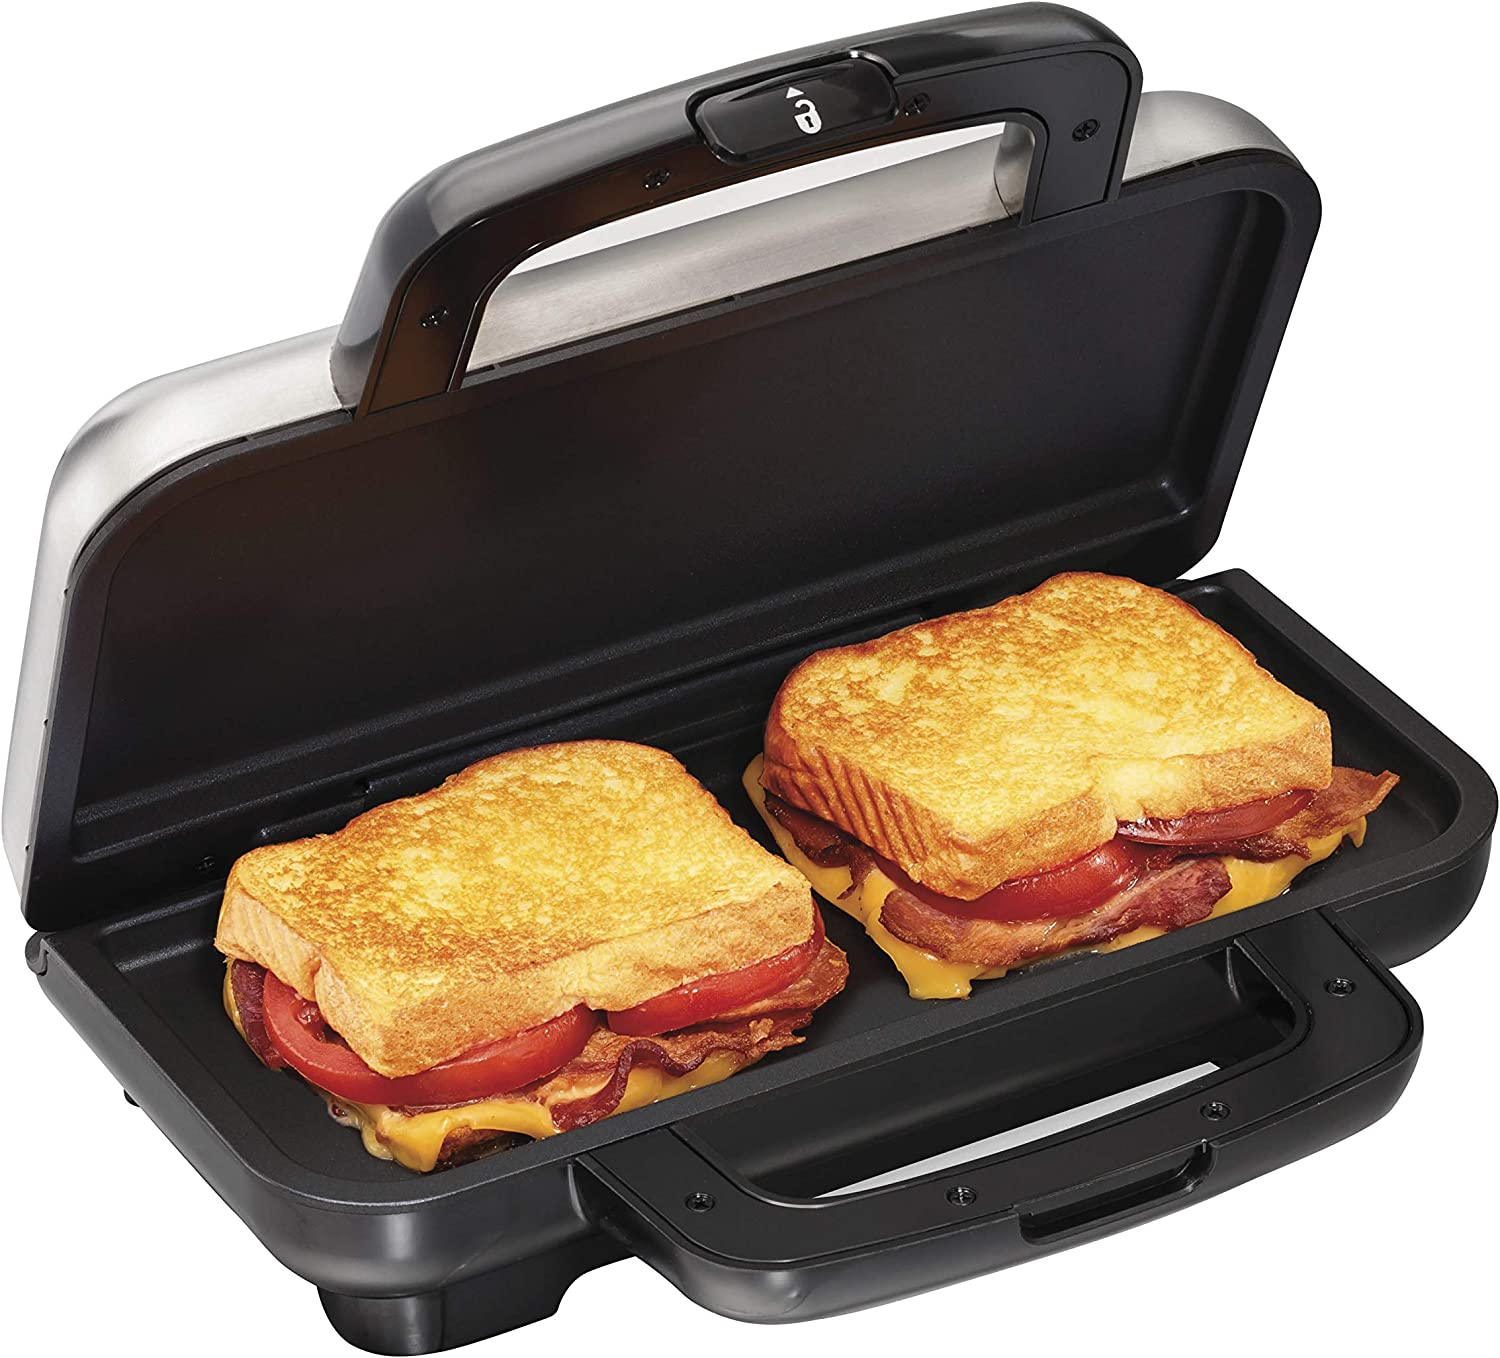 Proctor Silex Deluxe Hot Sandwich Maker, Nonstick Plates, Stainless Steel (25415)